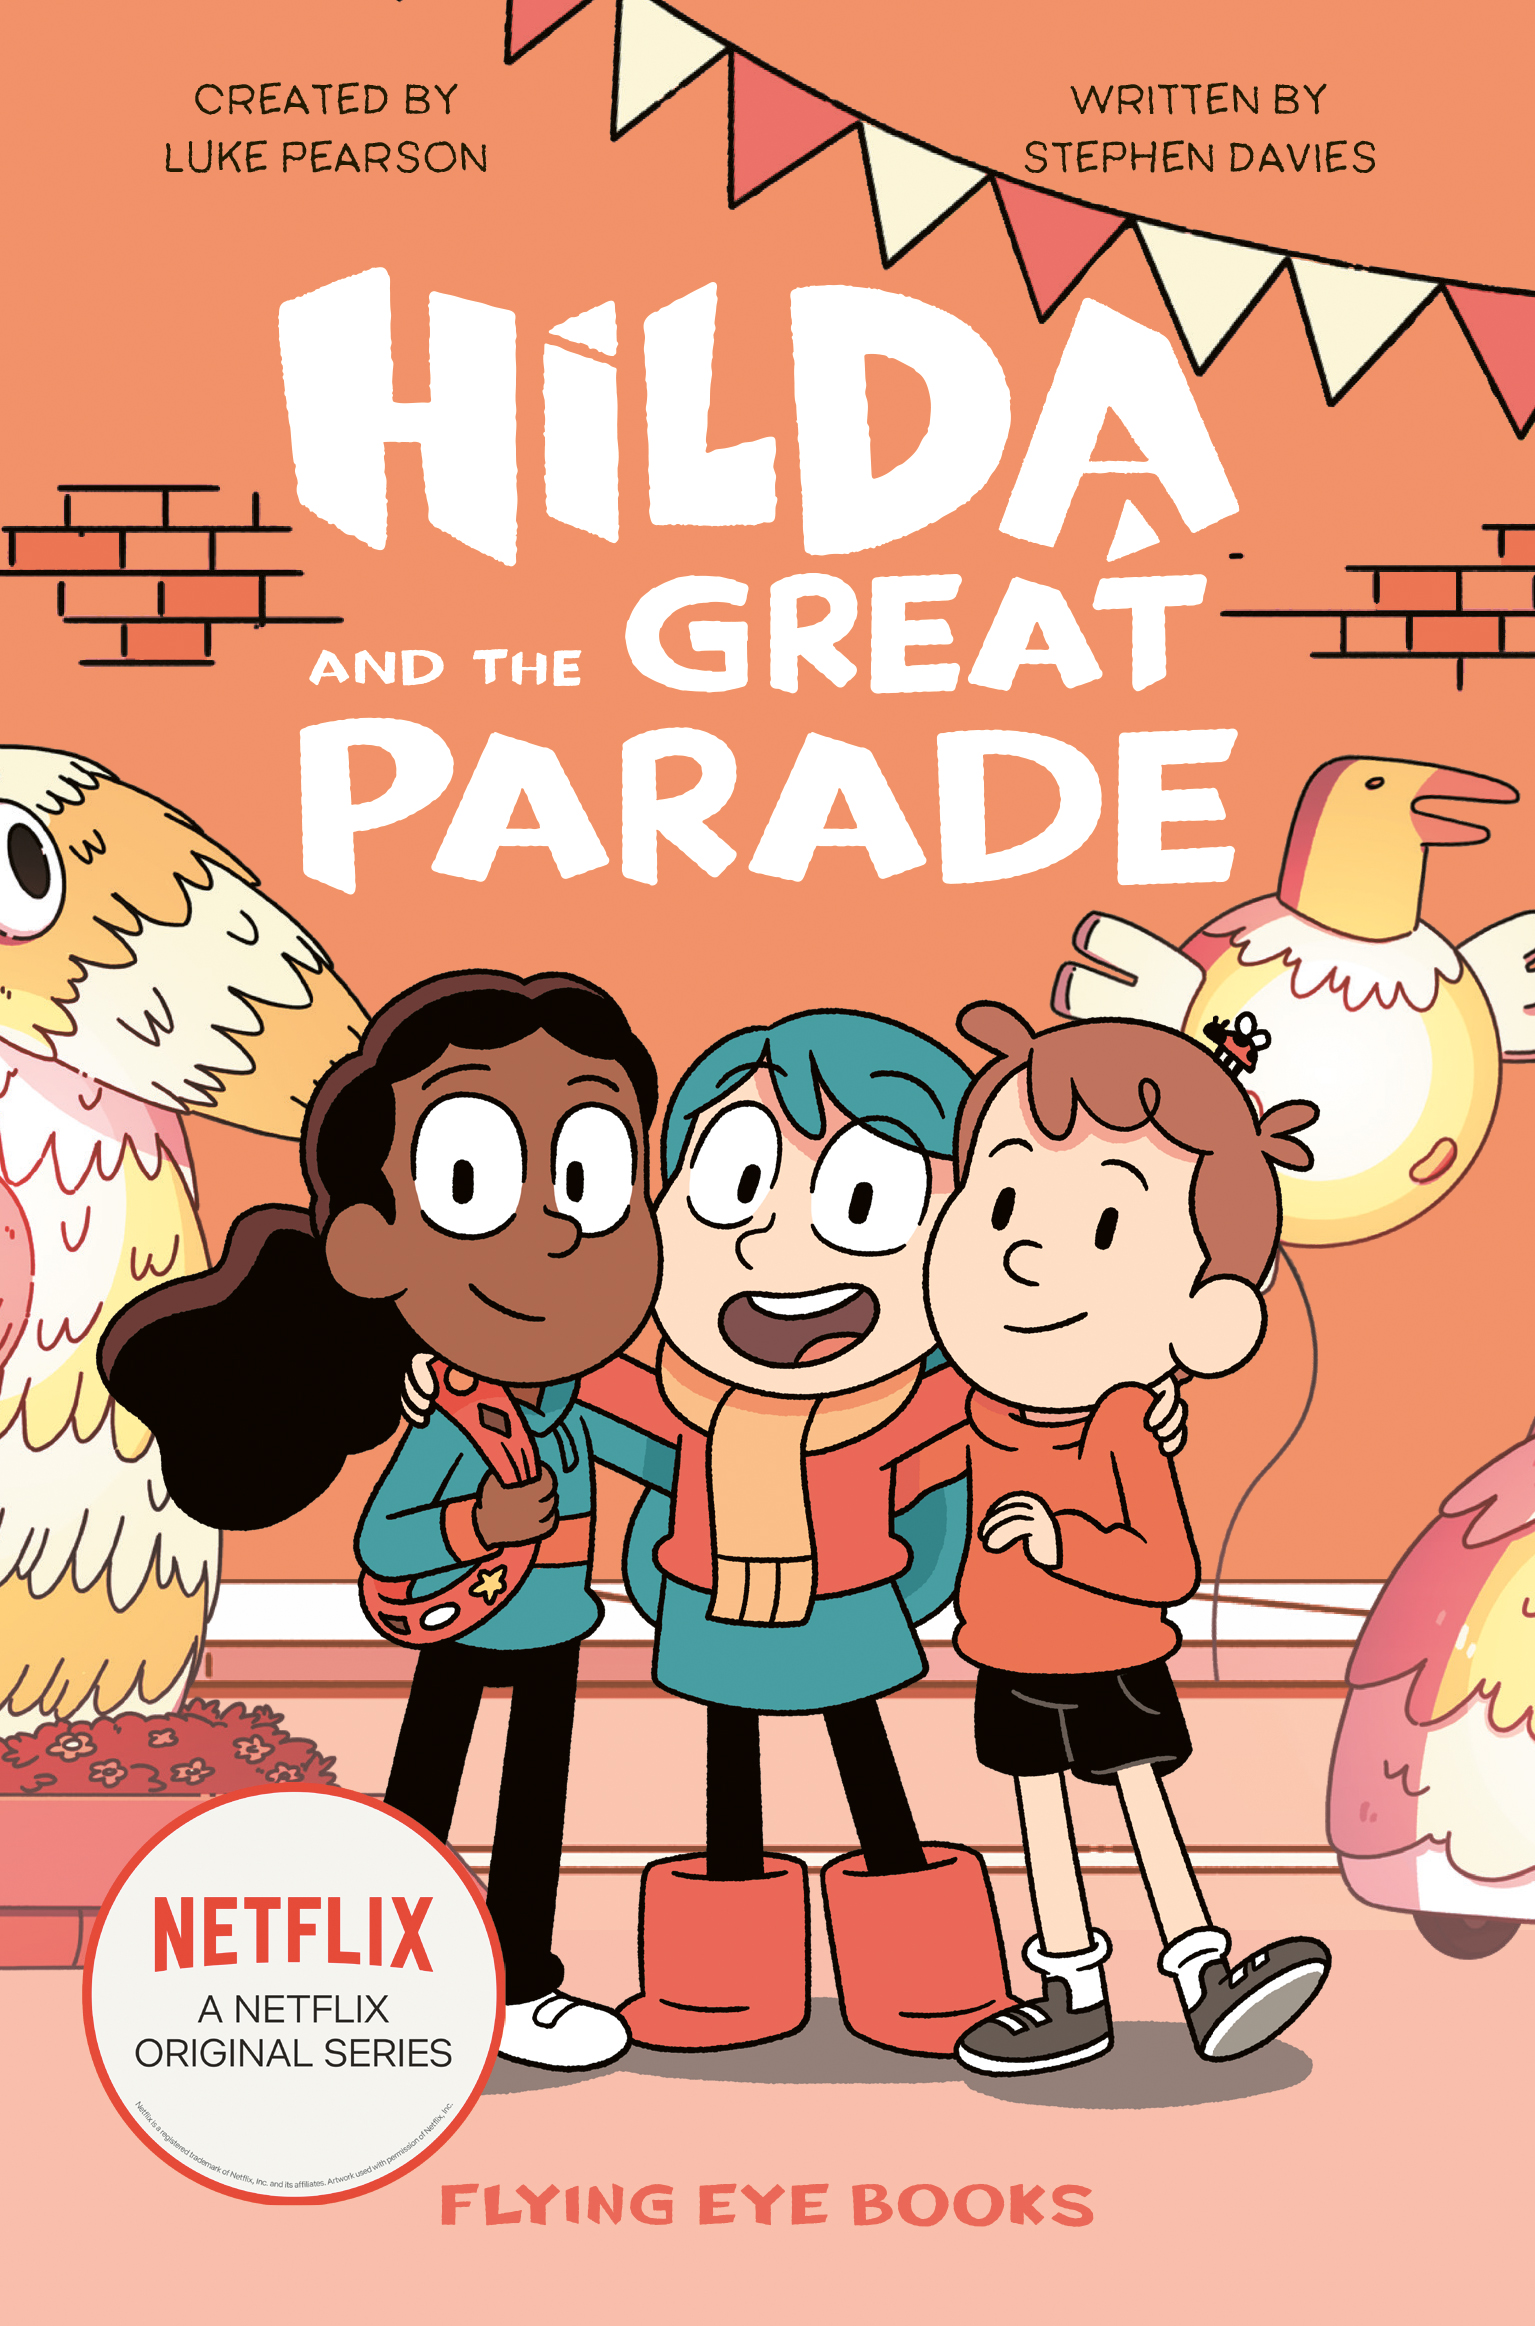 Hilda and The Great Parade